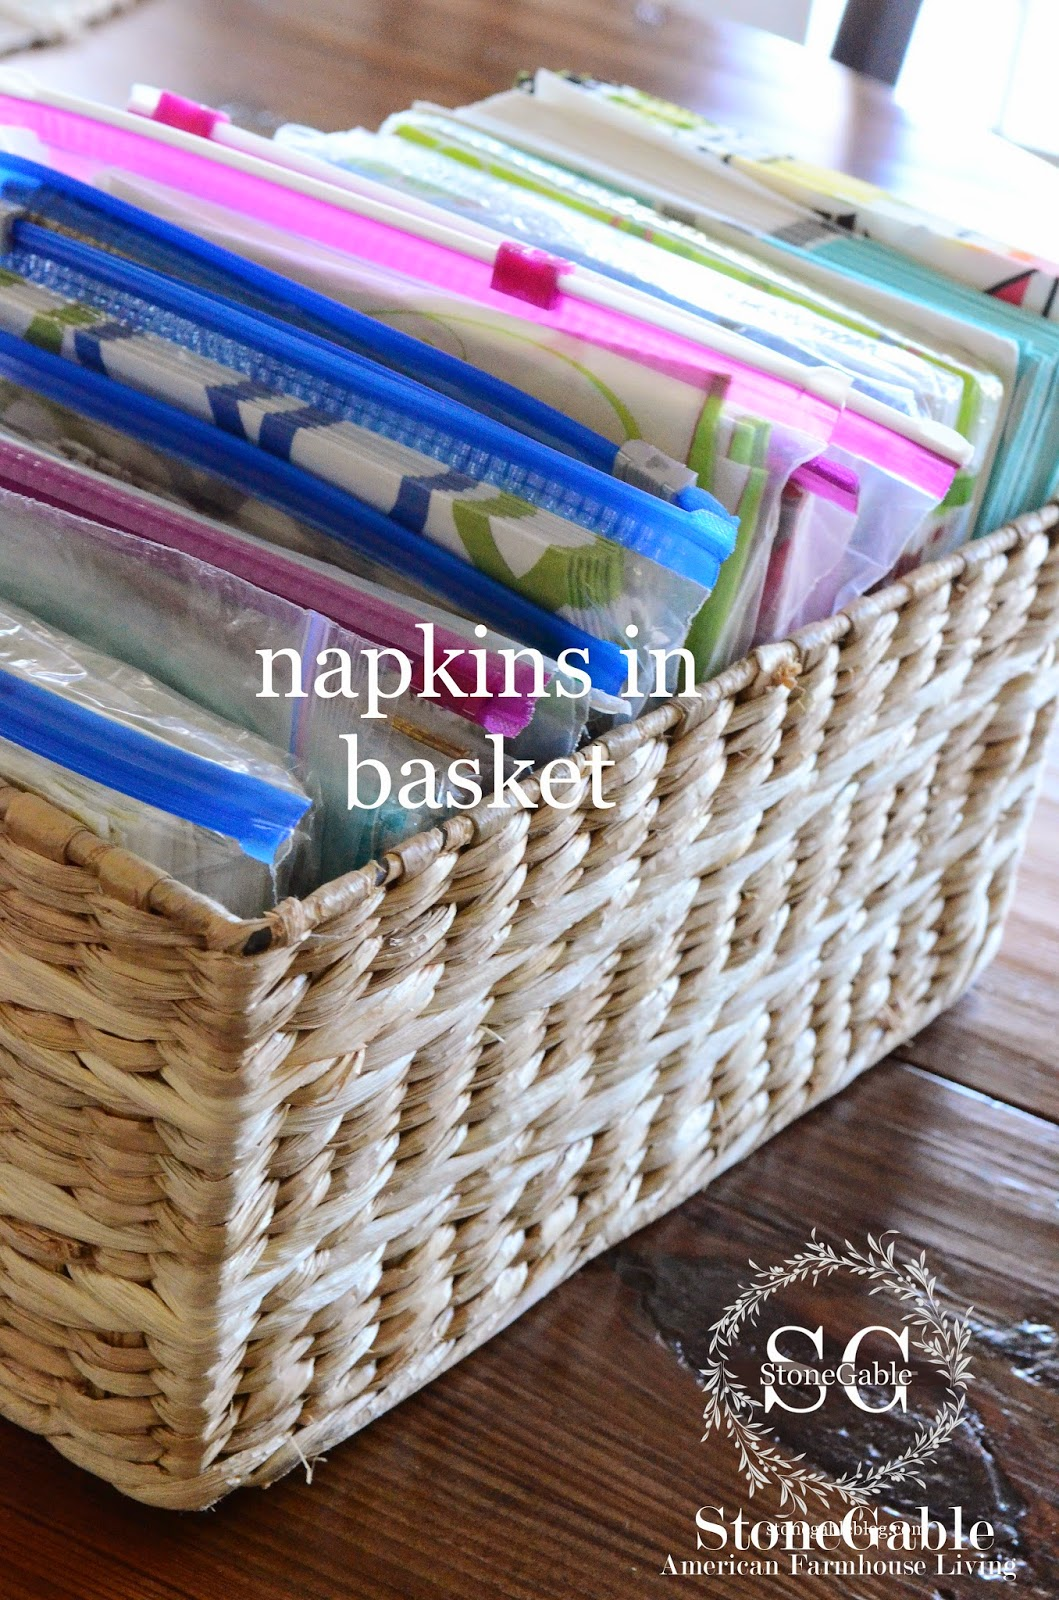 Before I Put The Basket Of Napkins In The Drawer, I Slipped The Pad Of  Disposable Place Mats Under It.